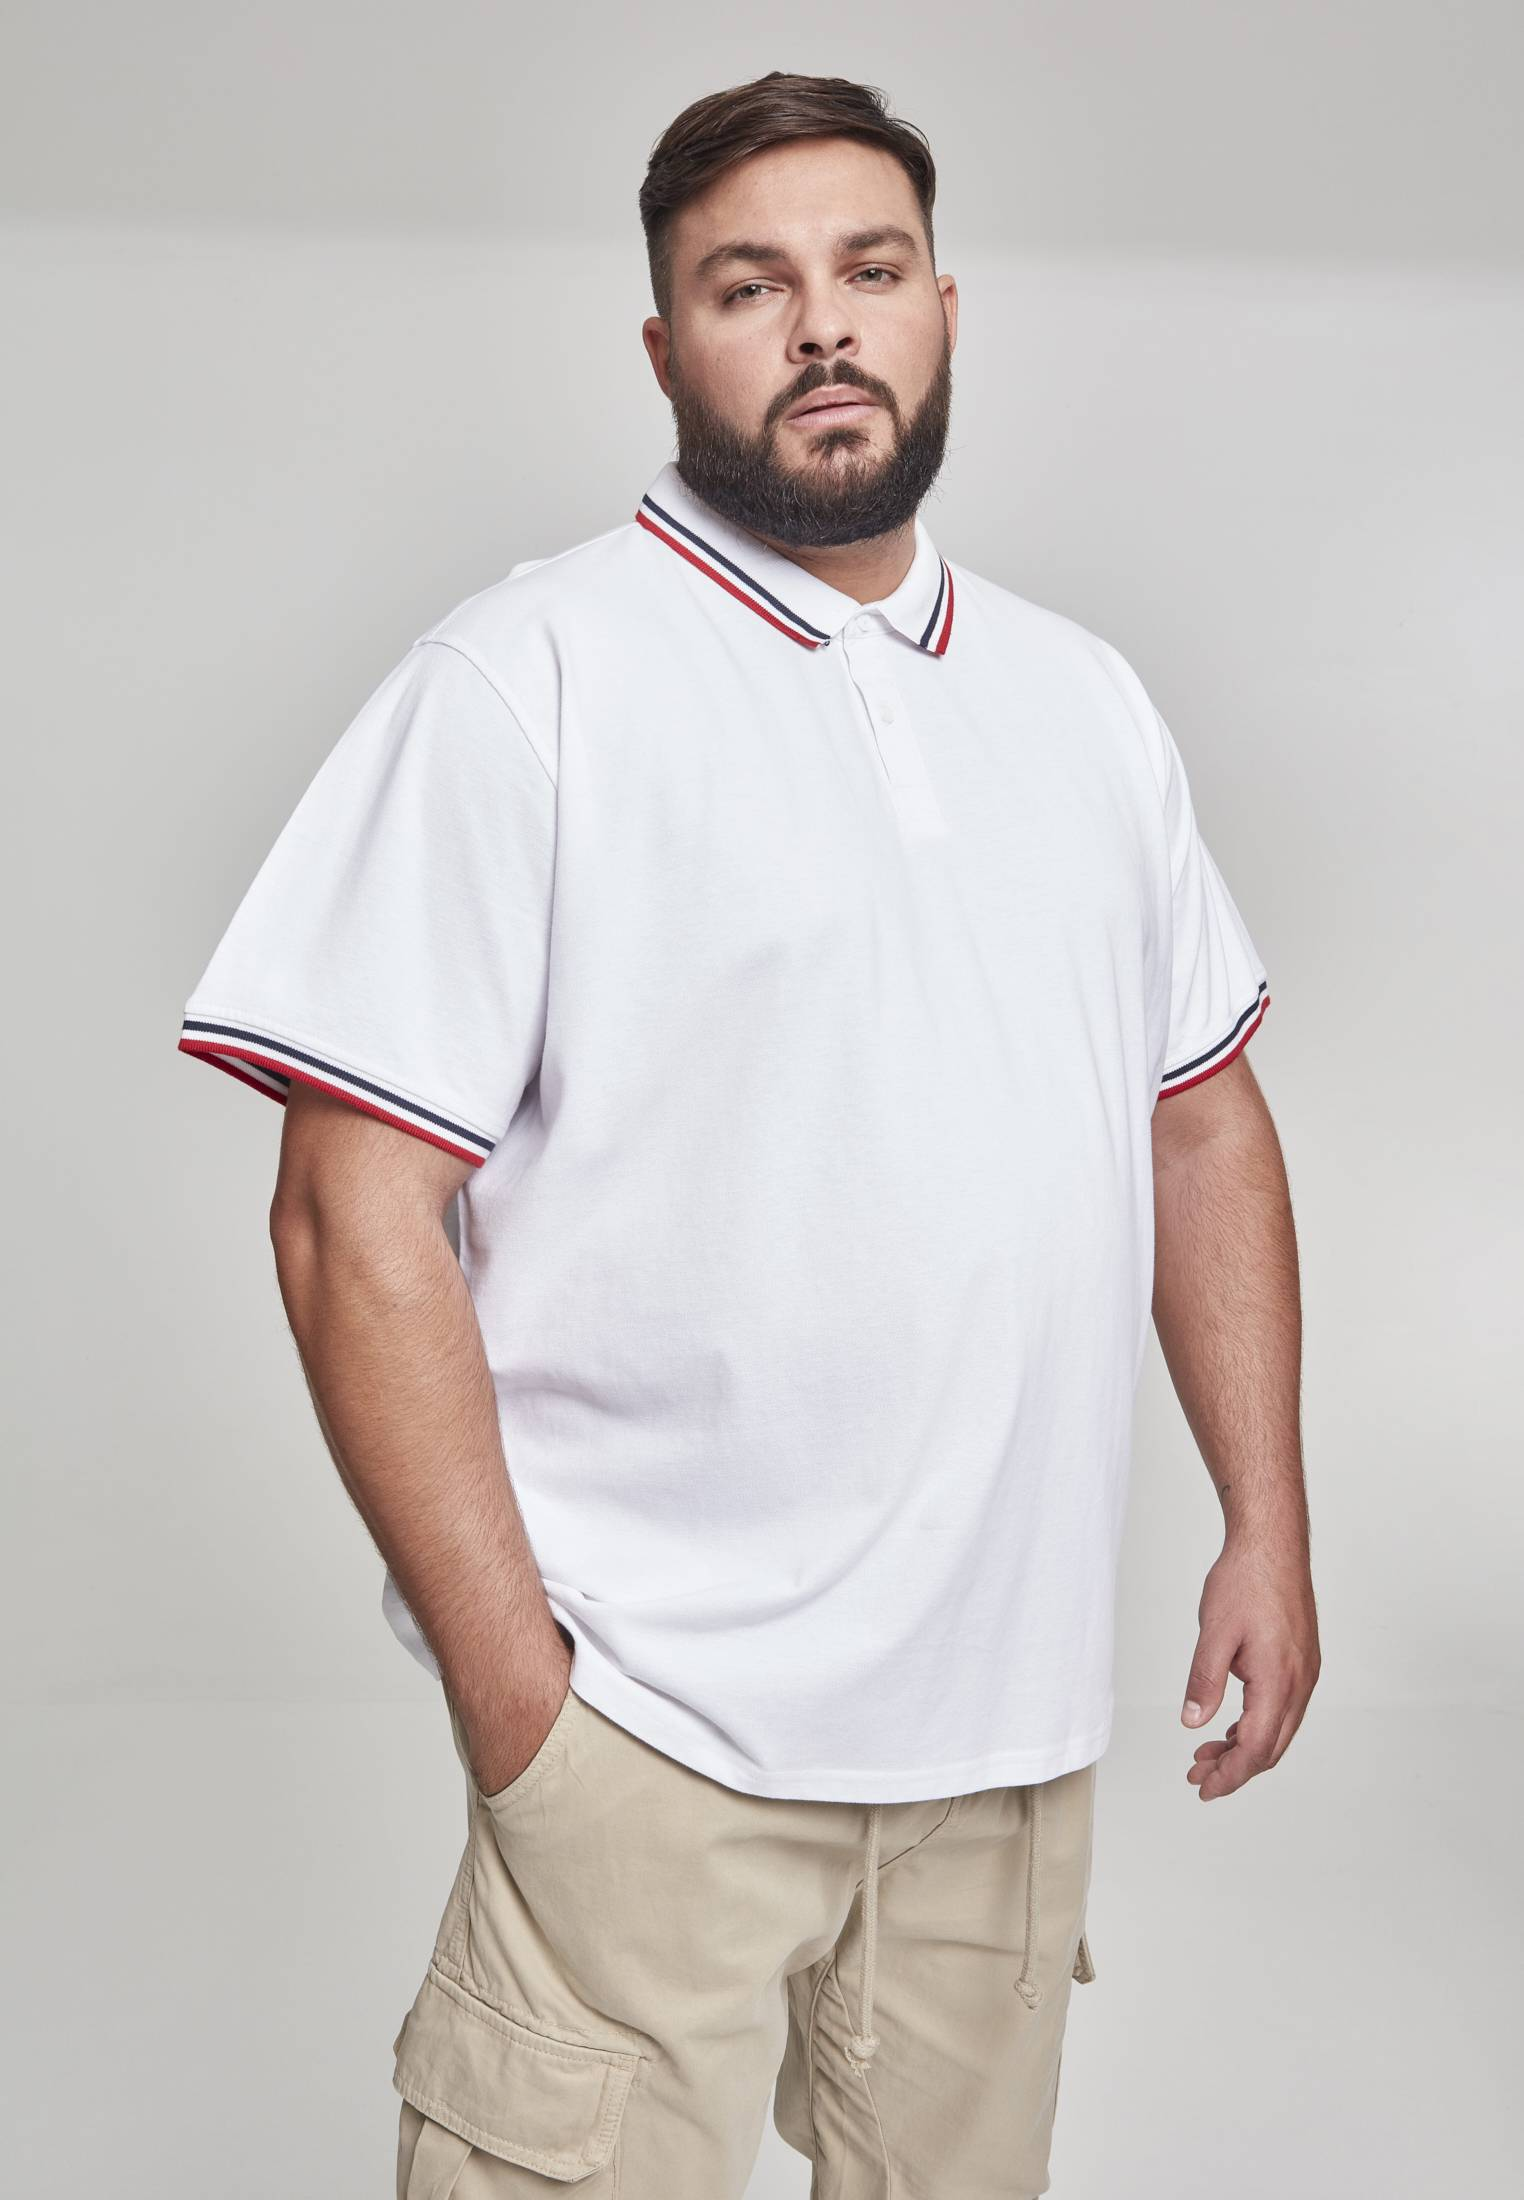 Urban Classic Double Stripe Poloshirt white/navy/fire red - S